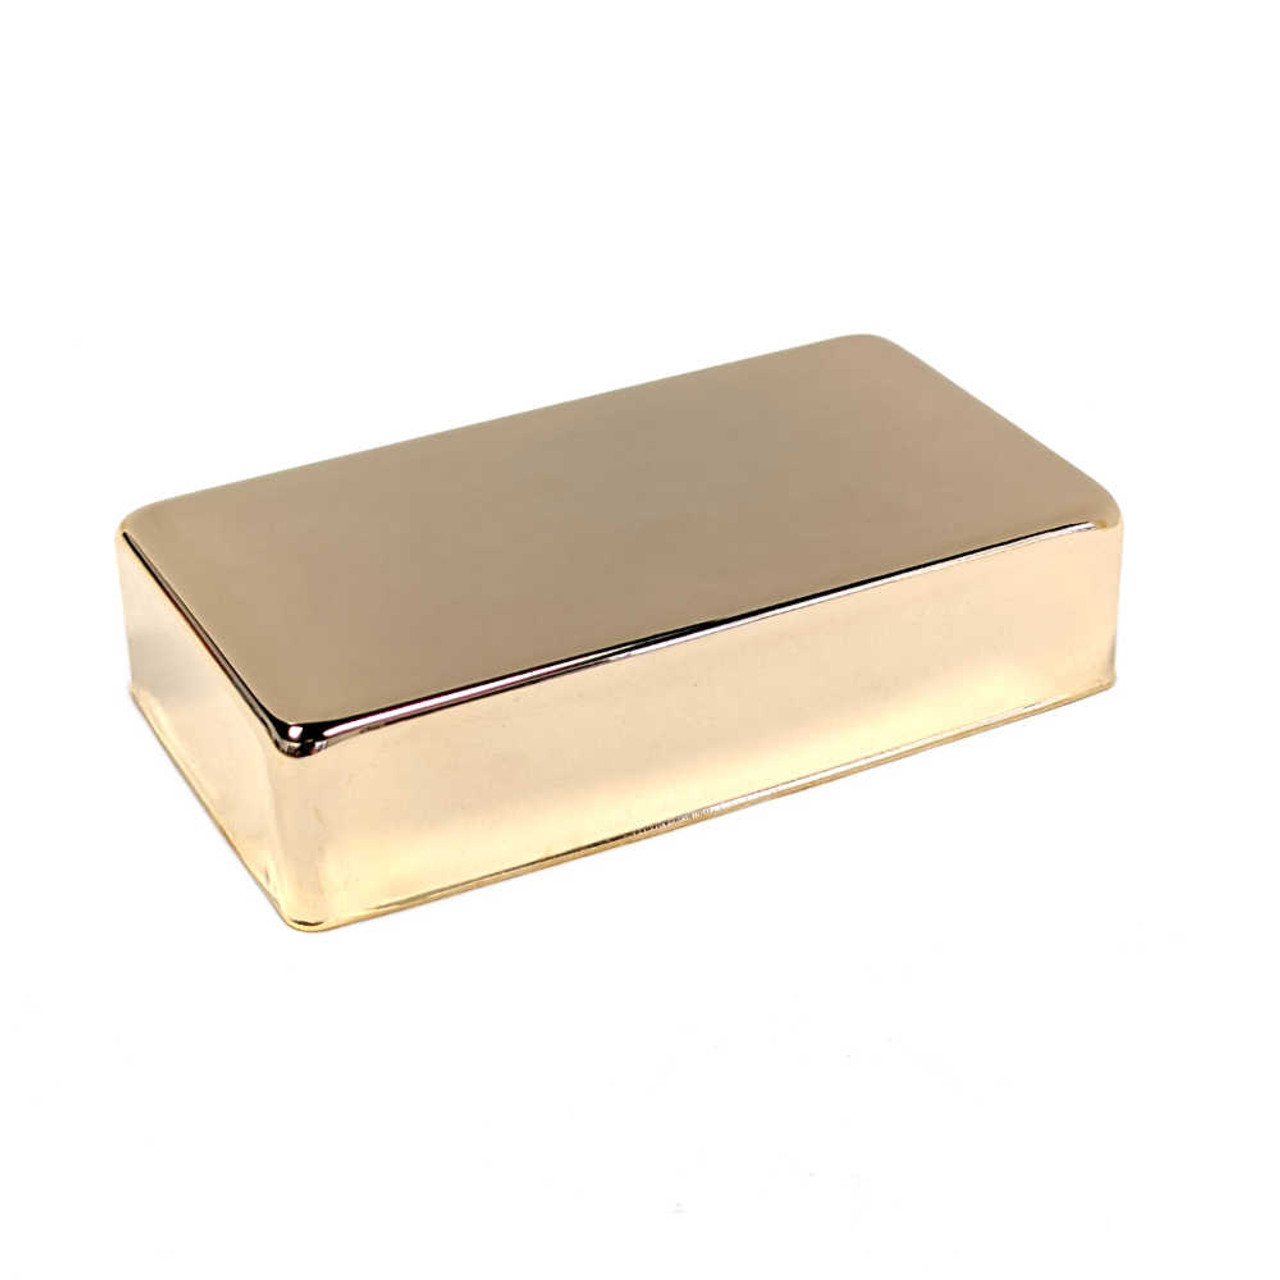 Humbucking Pickup Cover - Gold (plated nickel/silver)